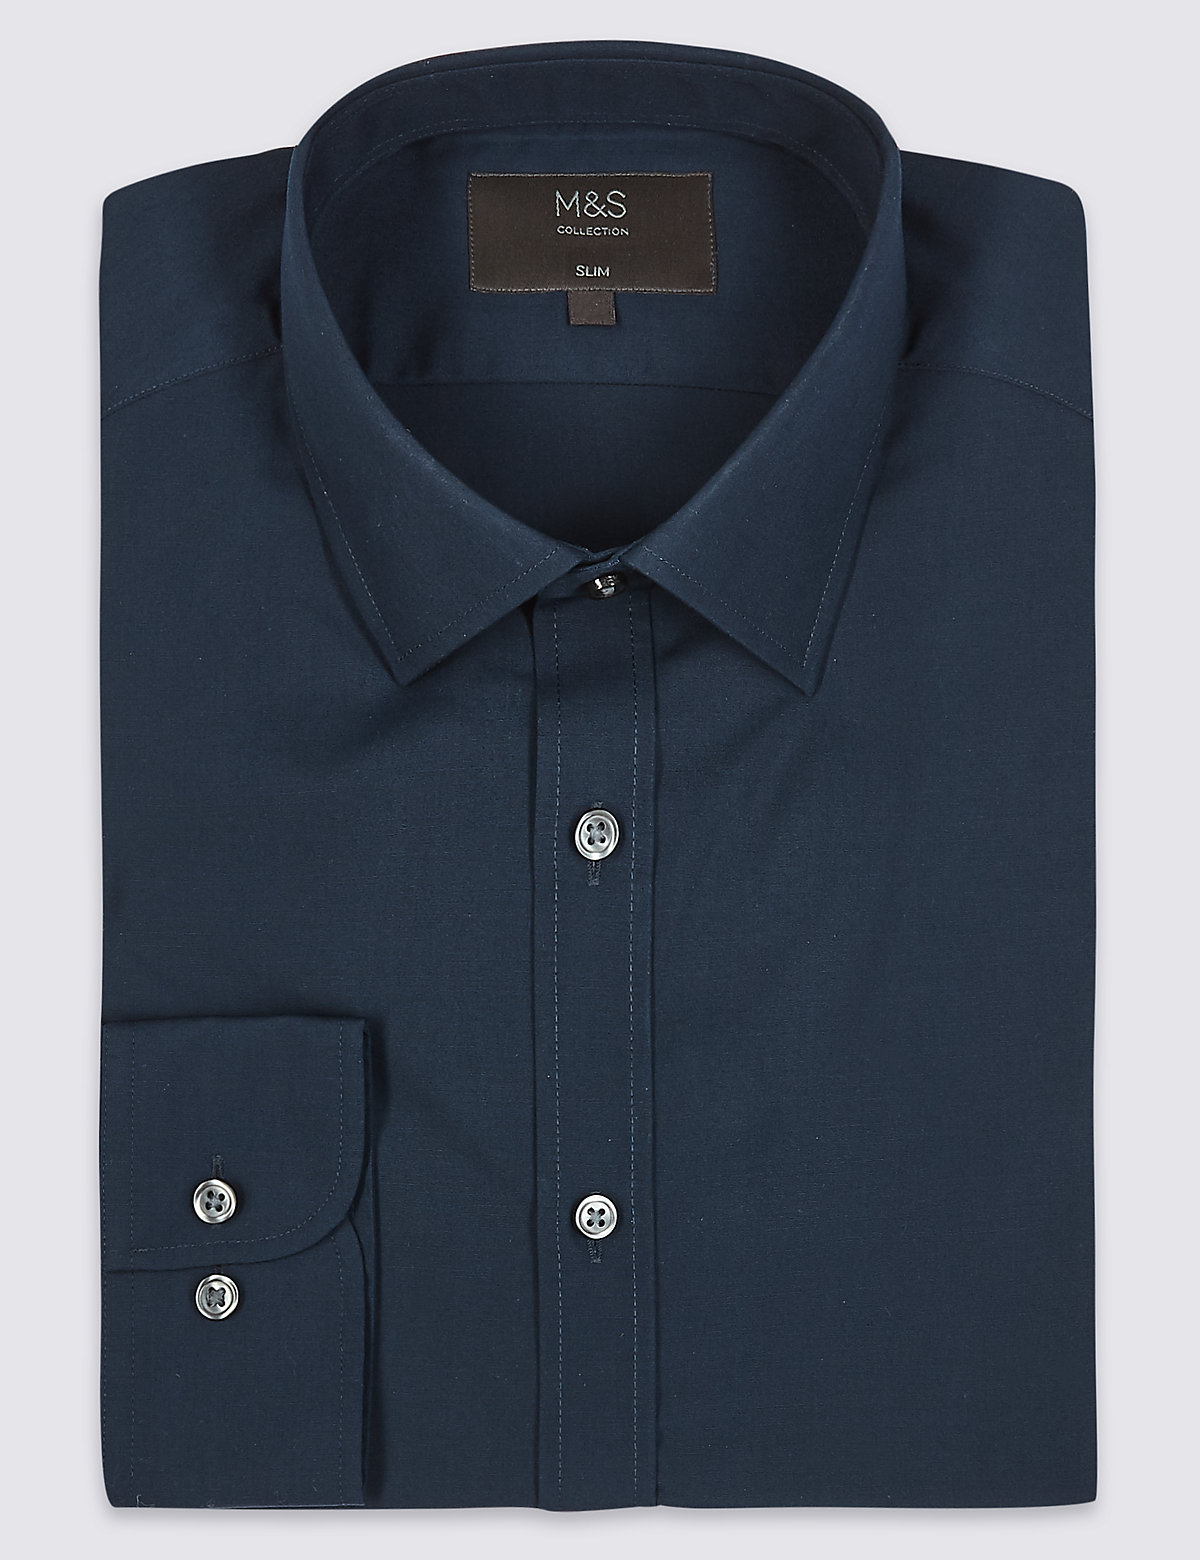 Marks & Spencer Navy Cotton Blend Slim Fit Shirt